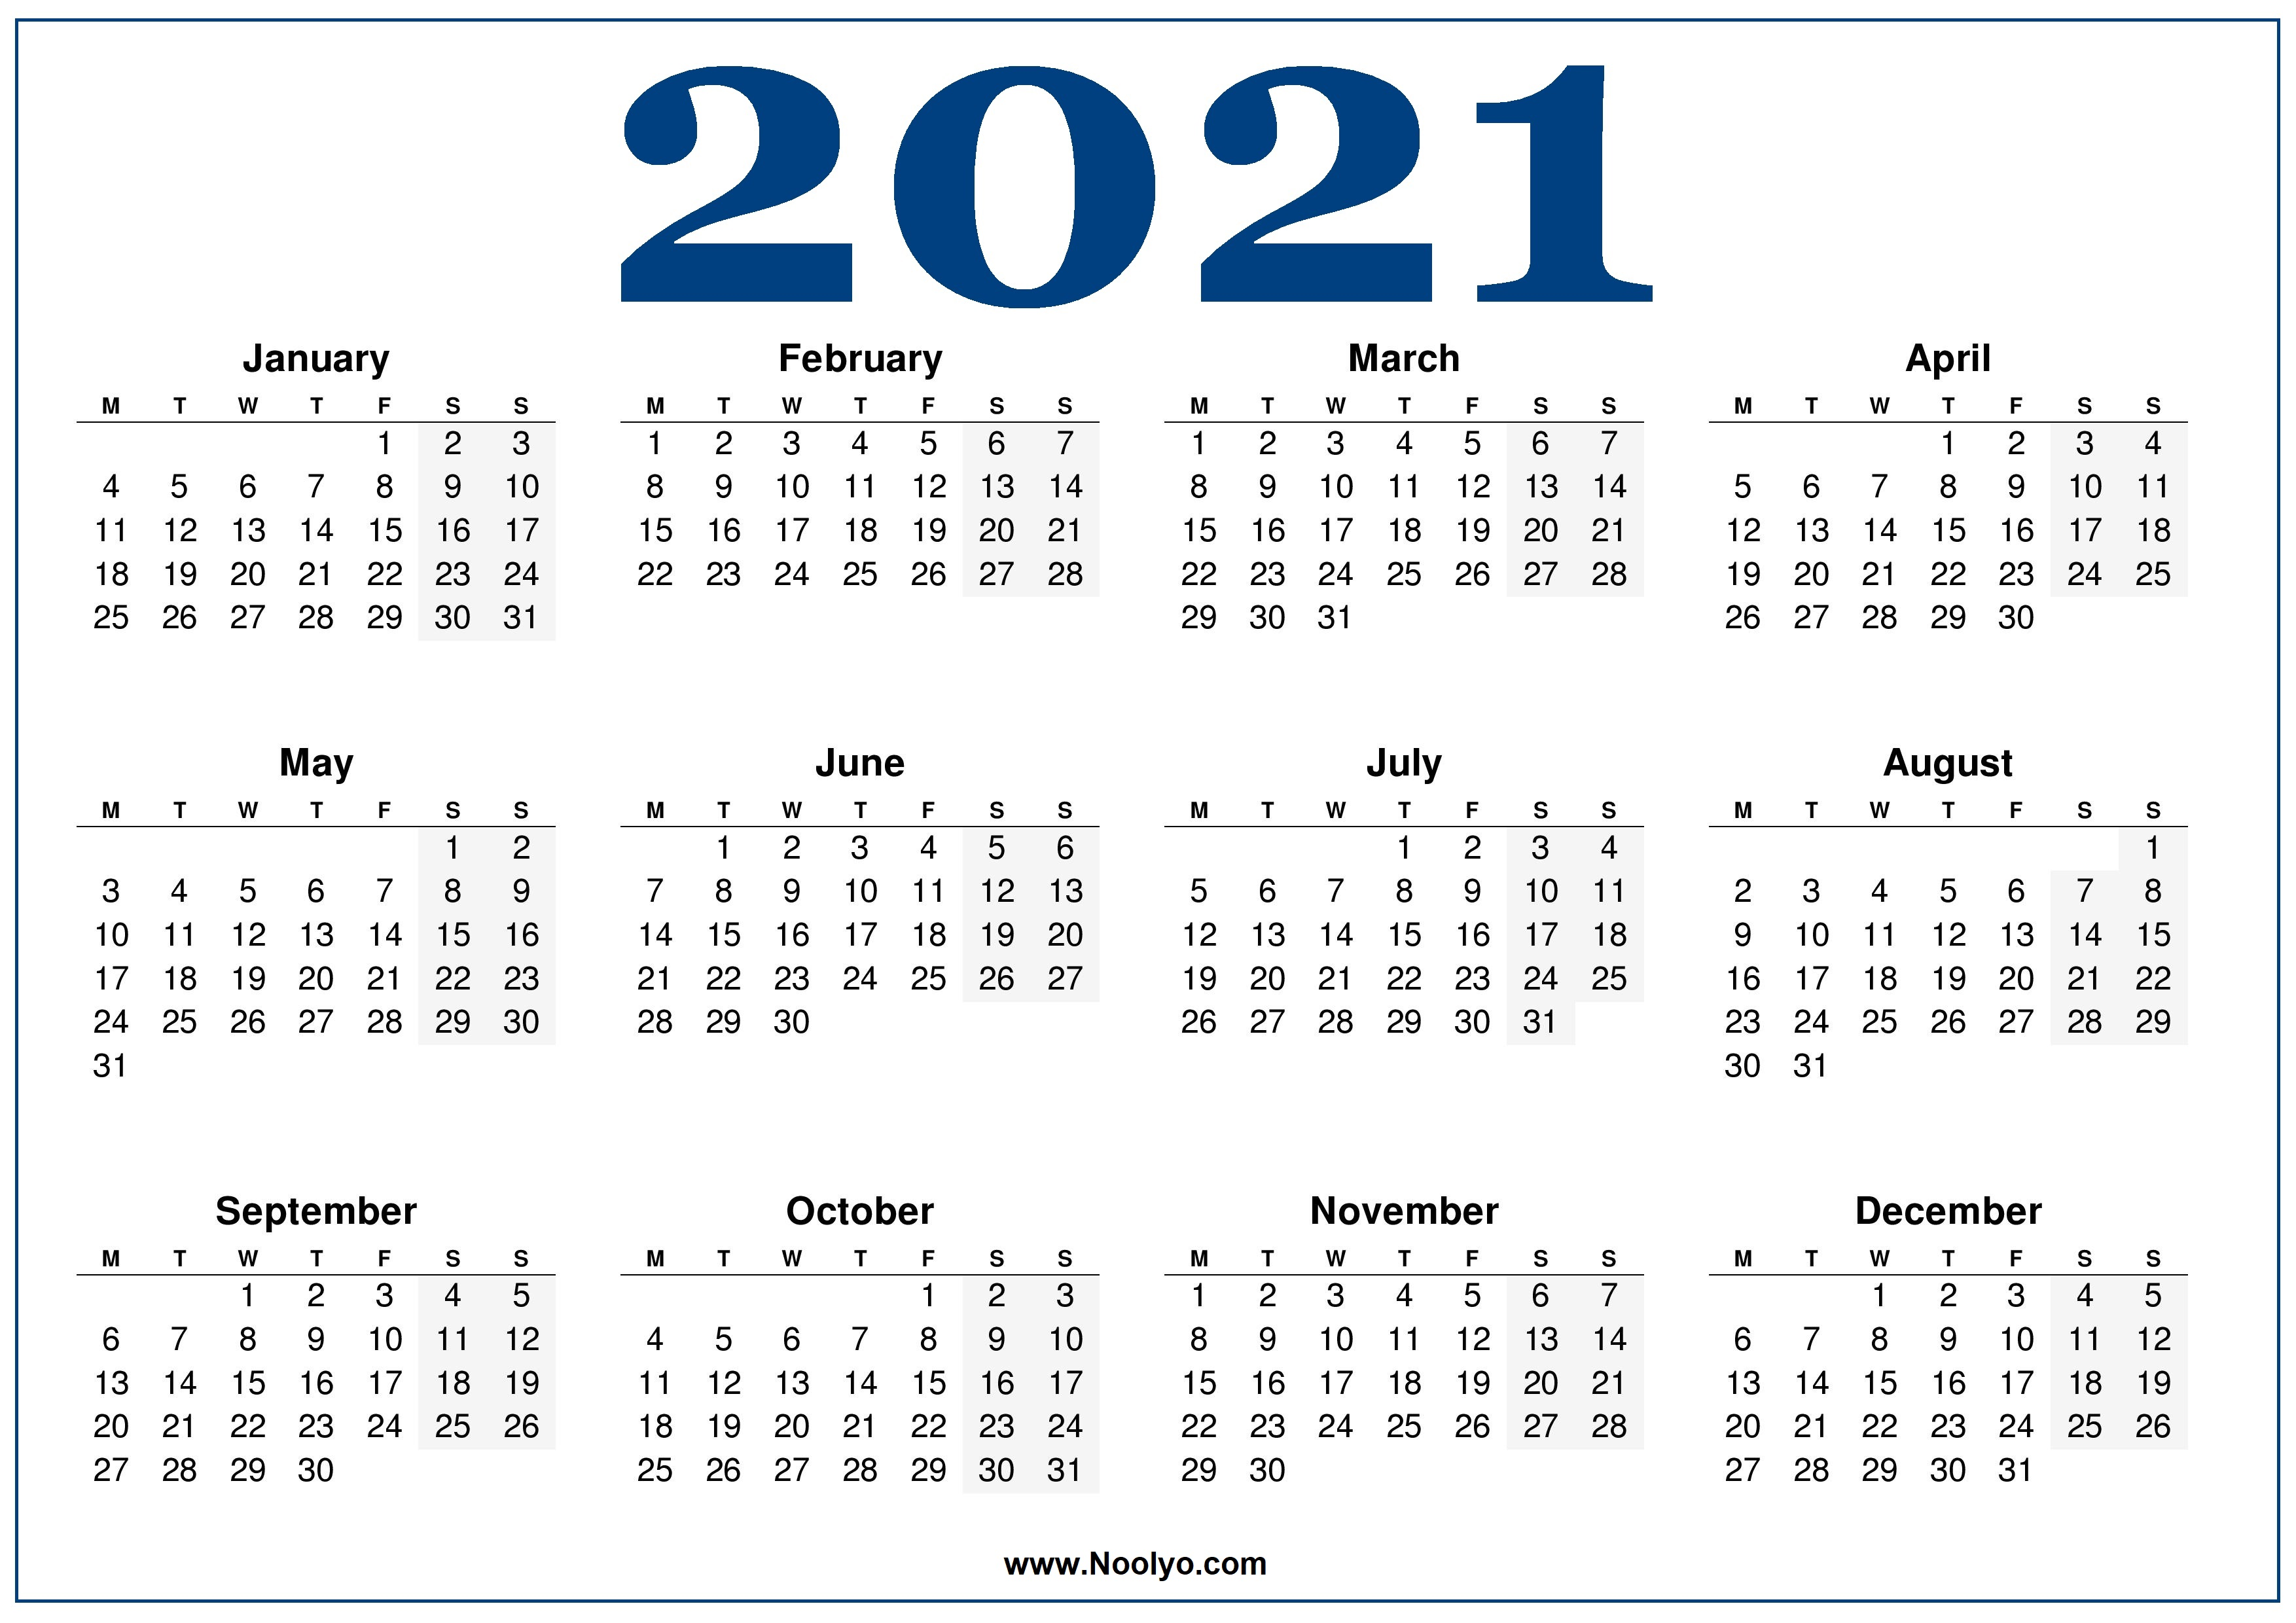 Monday week start Calendar 2021 Blue - Noolyo.com